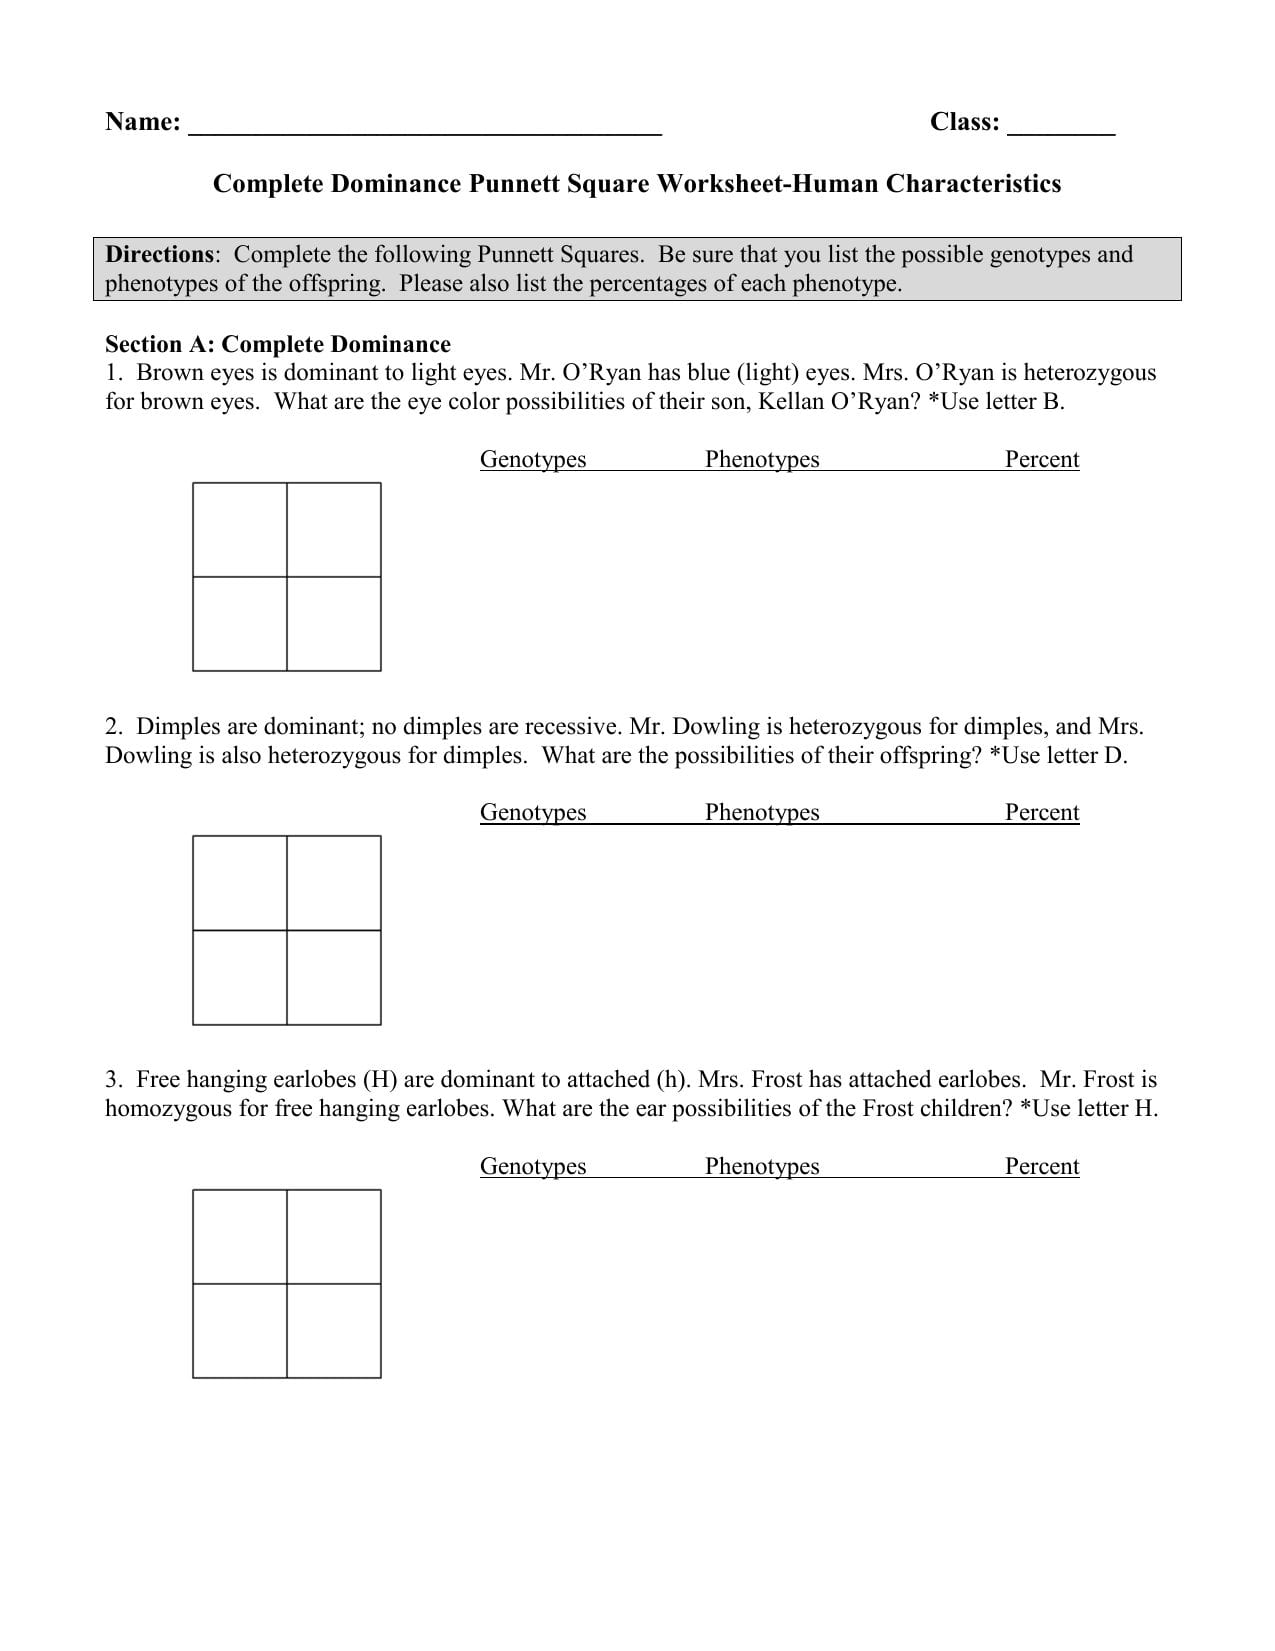 Complete Dominance Punnett Square Worksheet